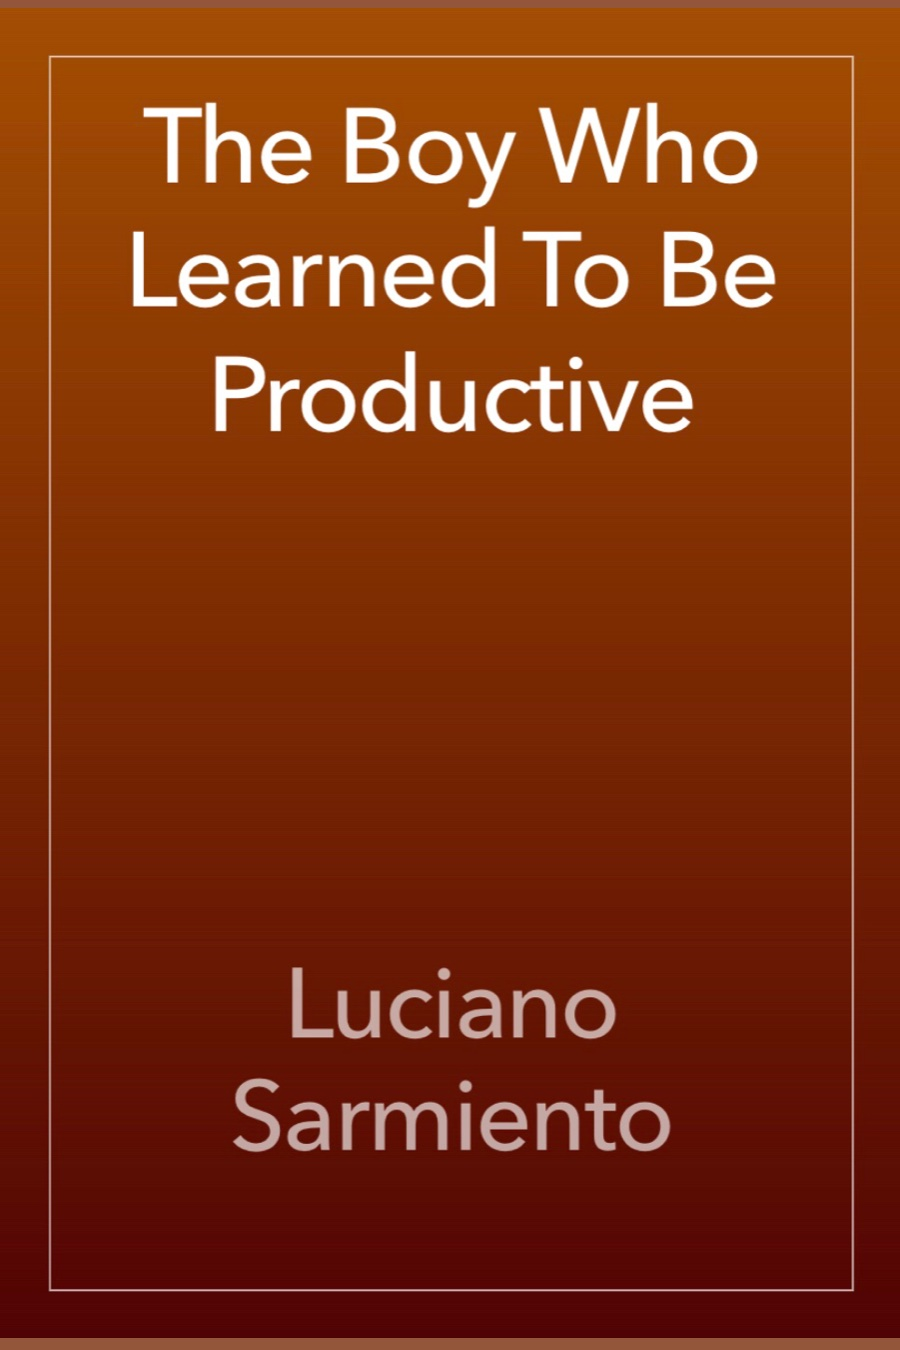 The Boy Who Learned To Be Productive